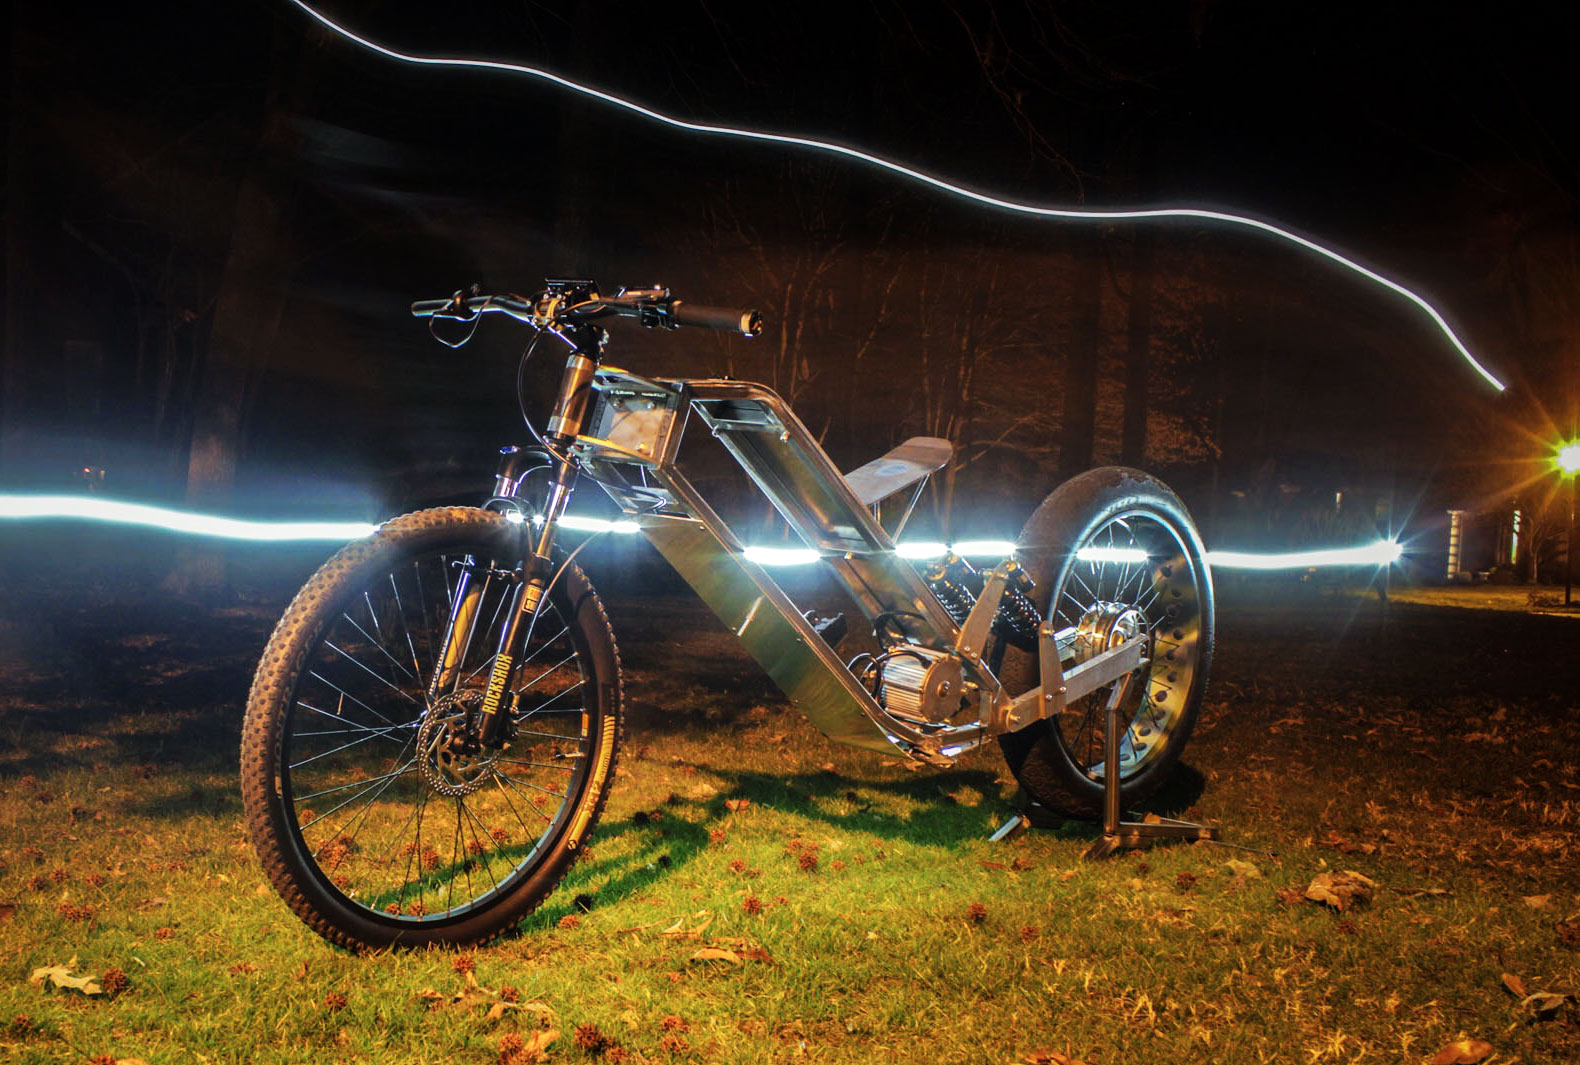 Student builds diy electric motorcycle in a flash